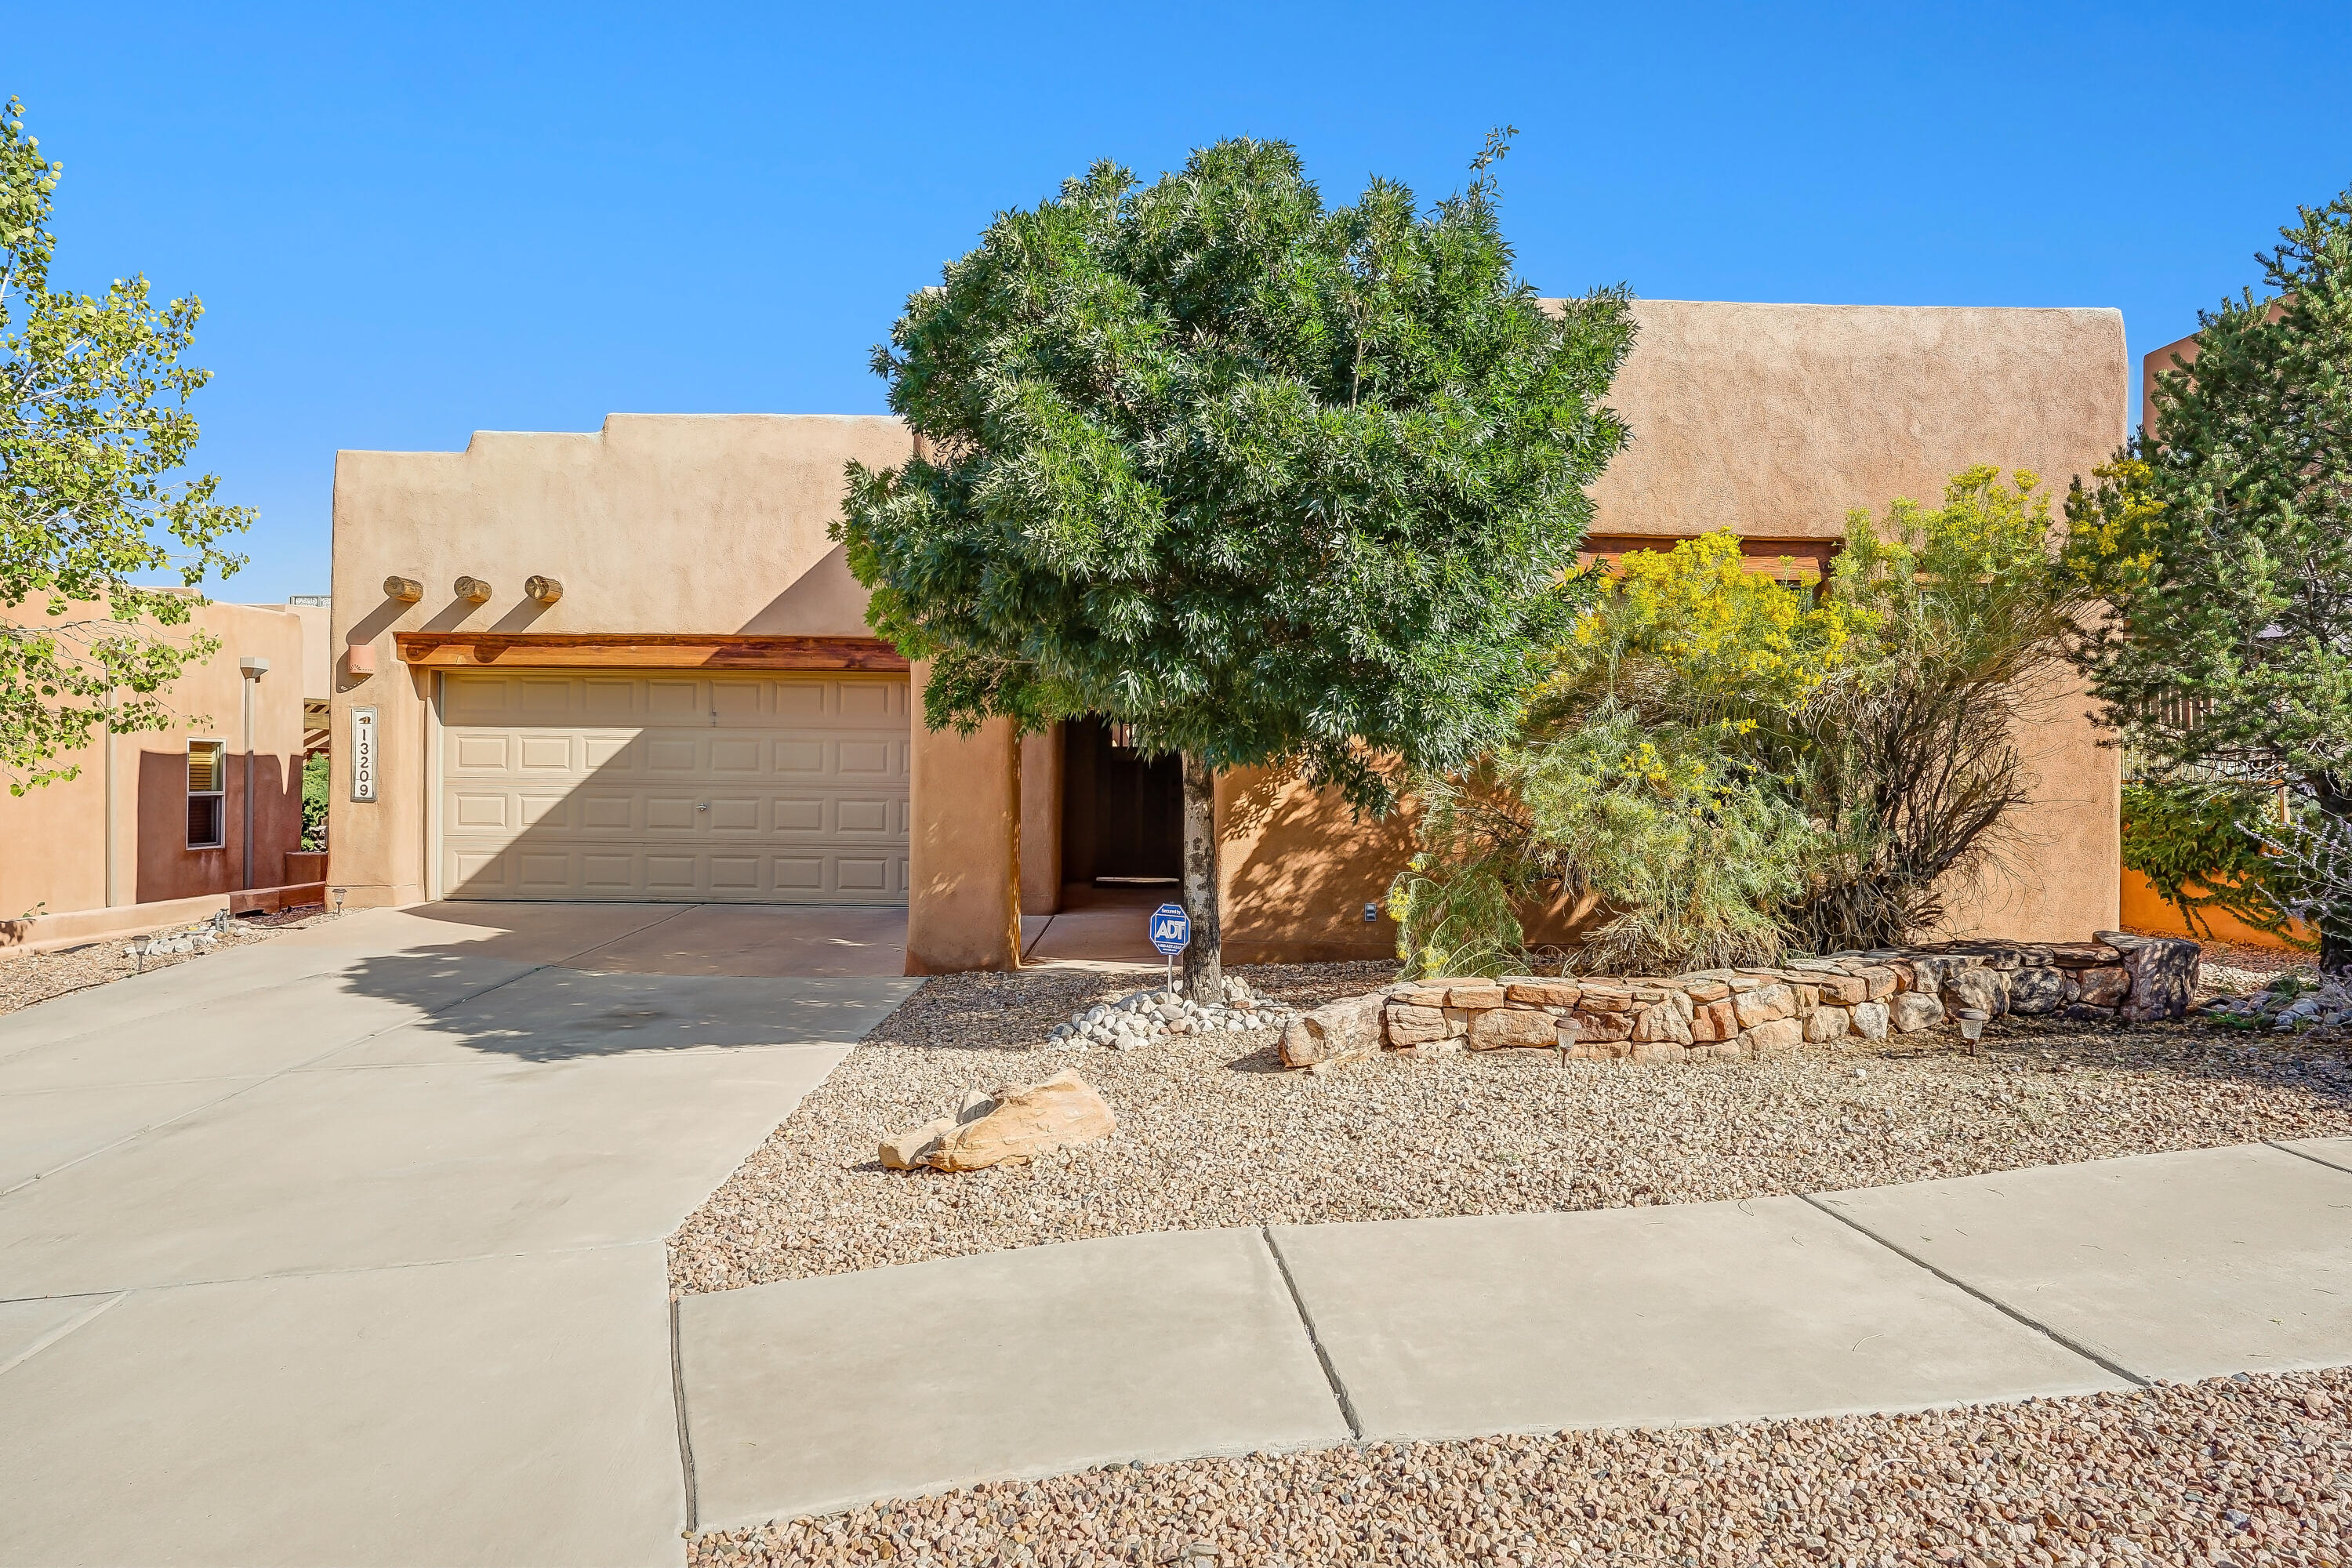 Check out the community pool on your way in or out!This beautiful High Desert home has 4 Bedrooms, 4 bathrooms, 2978 SqFt, and is perfect for entertaining with it's spacious kitchen, formal dining room, and two beautiful living rooms one that opens up to the backyard! The backyard is an oasis in itself with a pergola, well manicured landscaping and a peach tree. The private courtyard is also shaded with a large pergola with a quiet place to relax and a separate casita! Adobe kiva fireplace, custom doors, tile countertops are just a few of the amazing features this home has to offer. Master bedroom features stunning ceilings with traditional vigas, large master bathroom with double sink, separate garden tub and spacious walk-in shower.